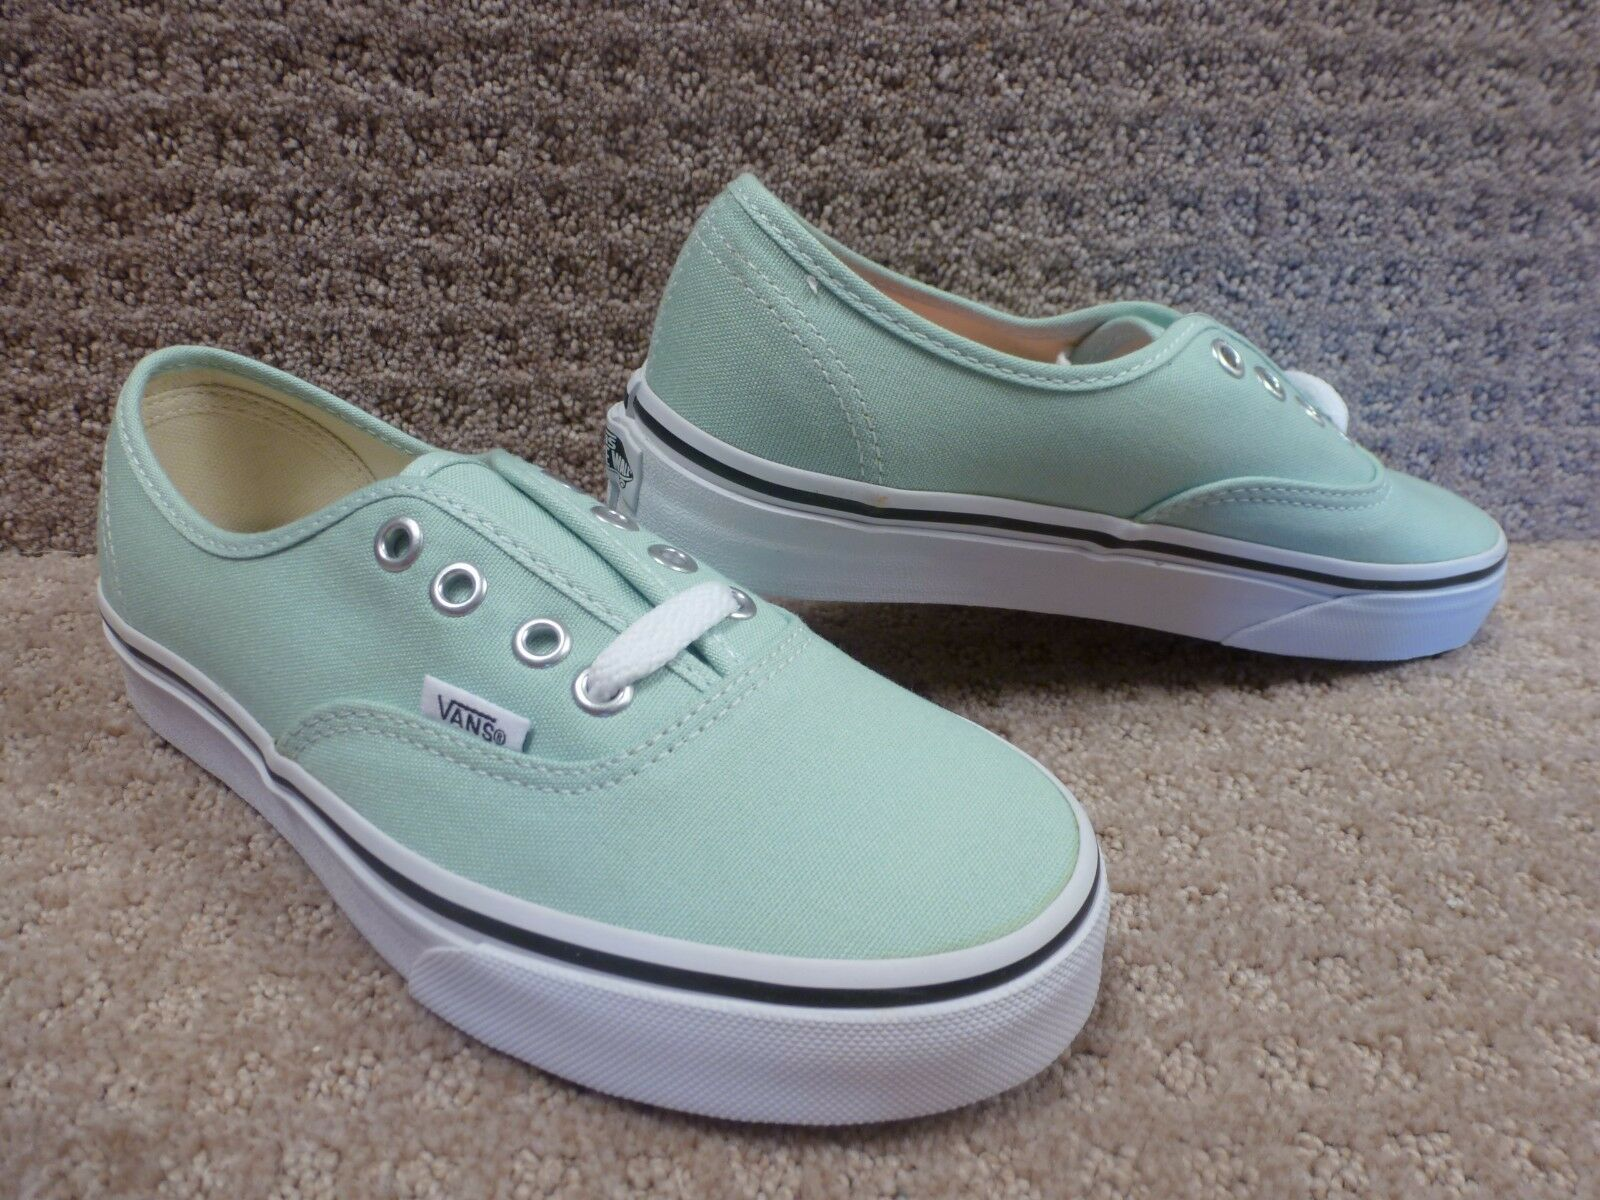 Vans Men's shoes Authentic Gossamer Green True White , Size 3.5